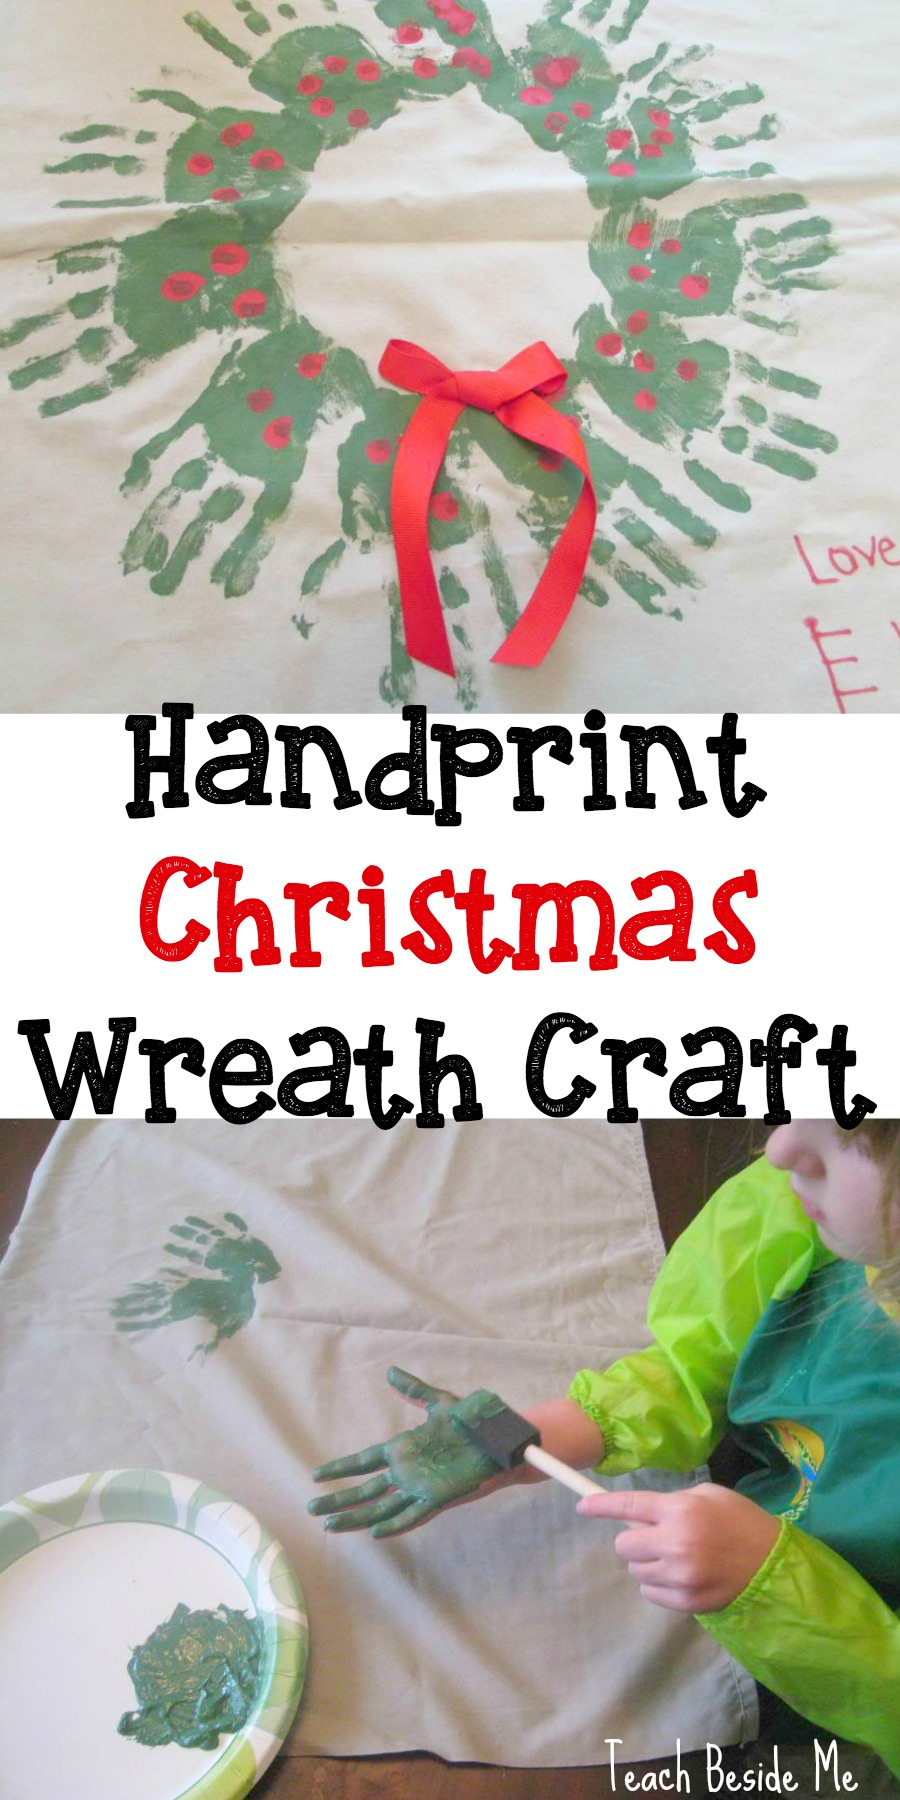 handprint-christmas-wreath-craft-homemade-gift